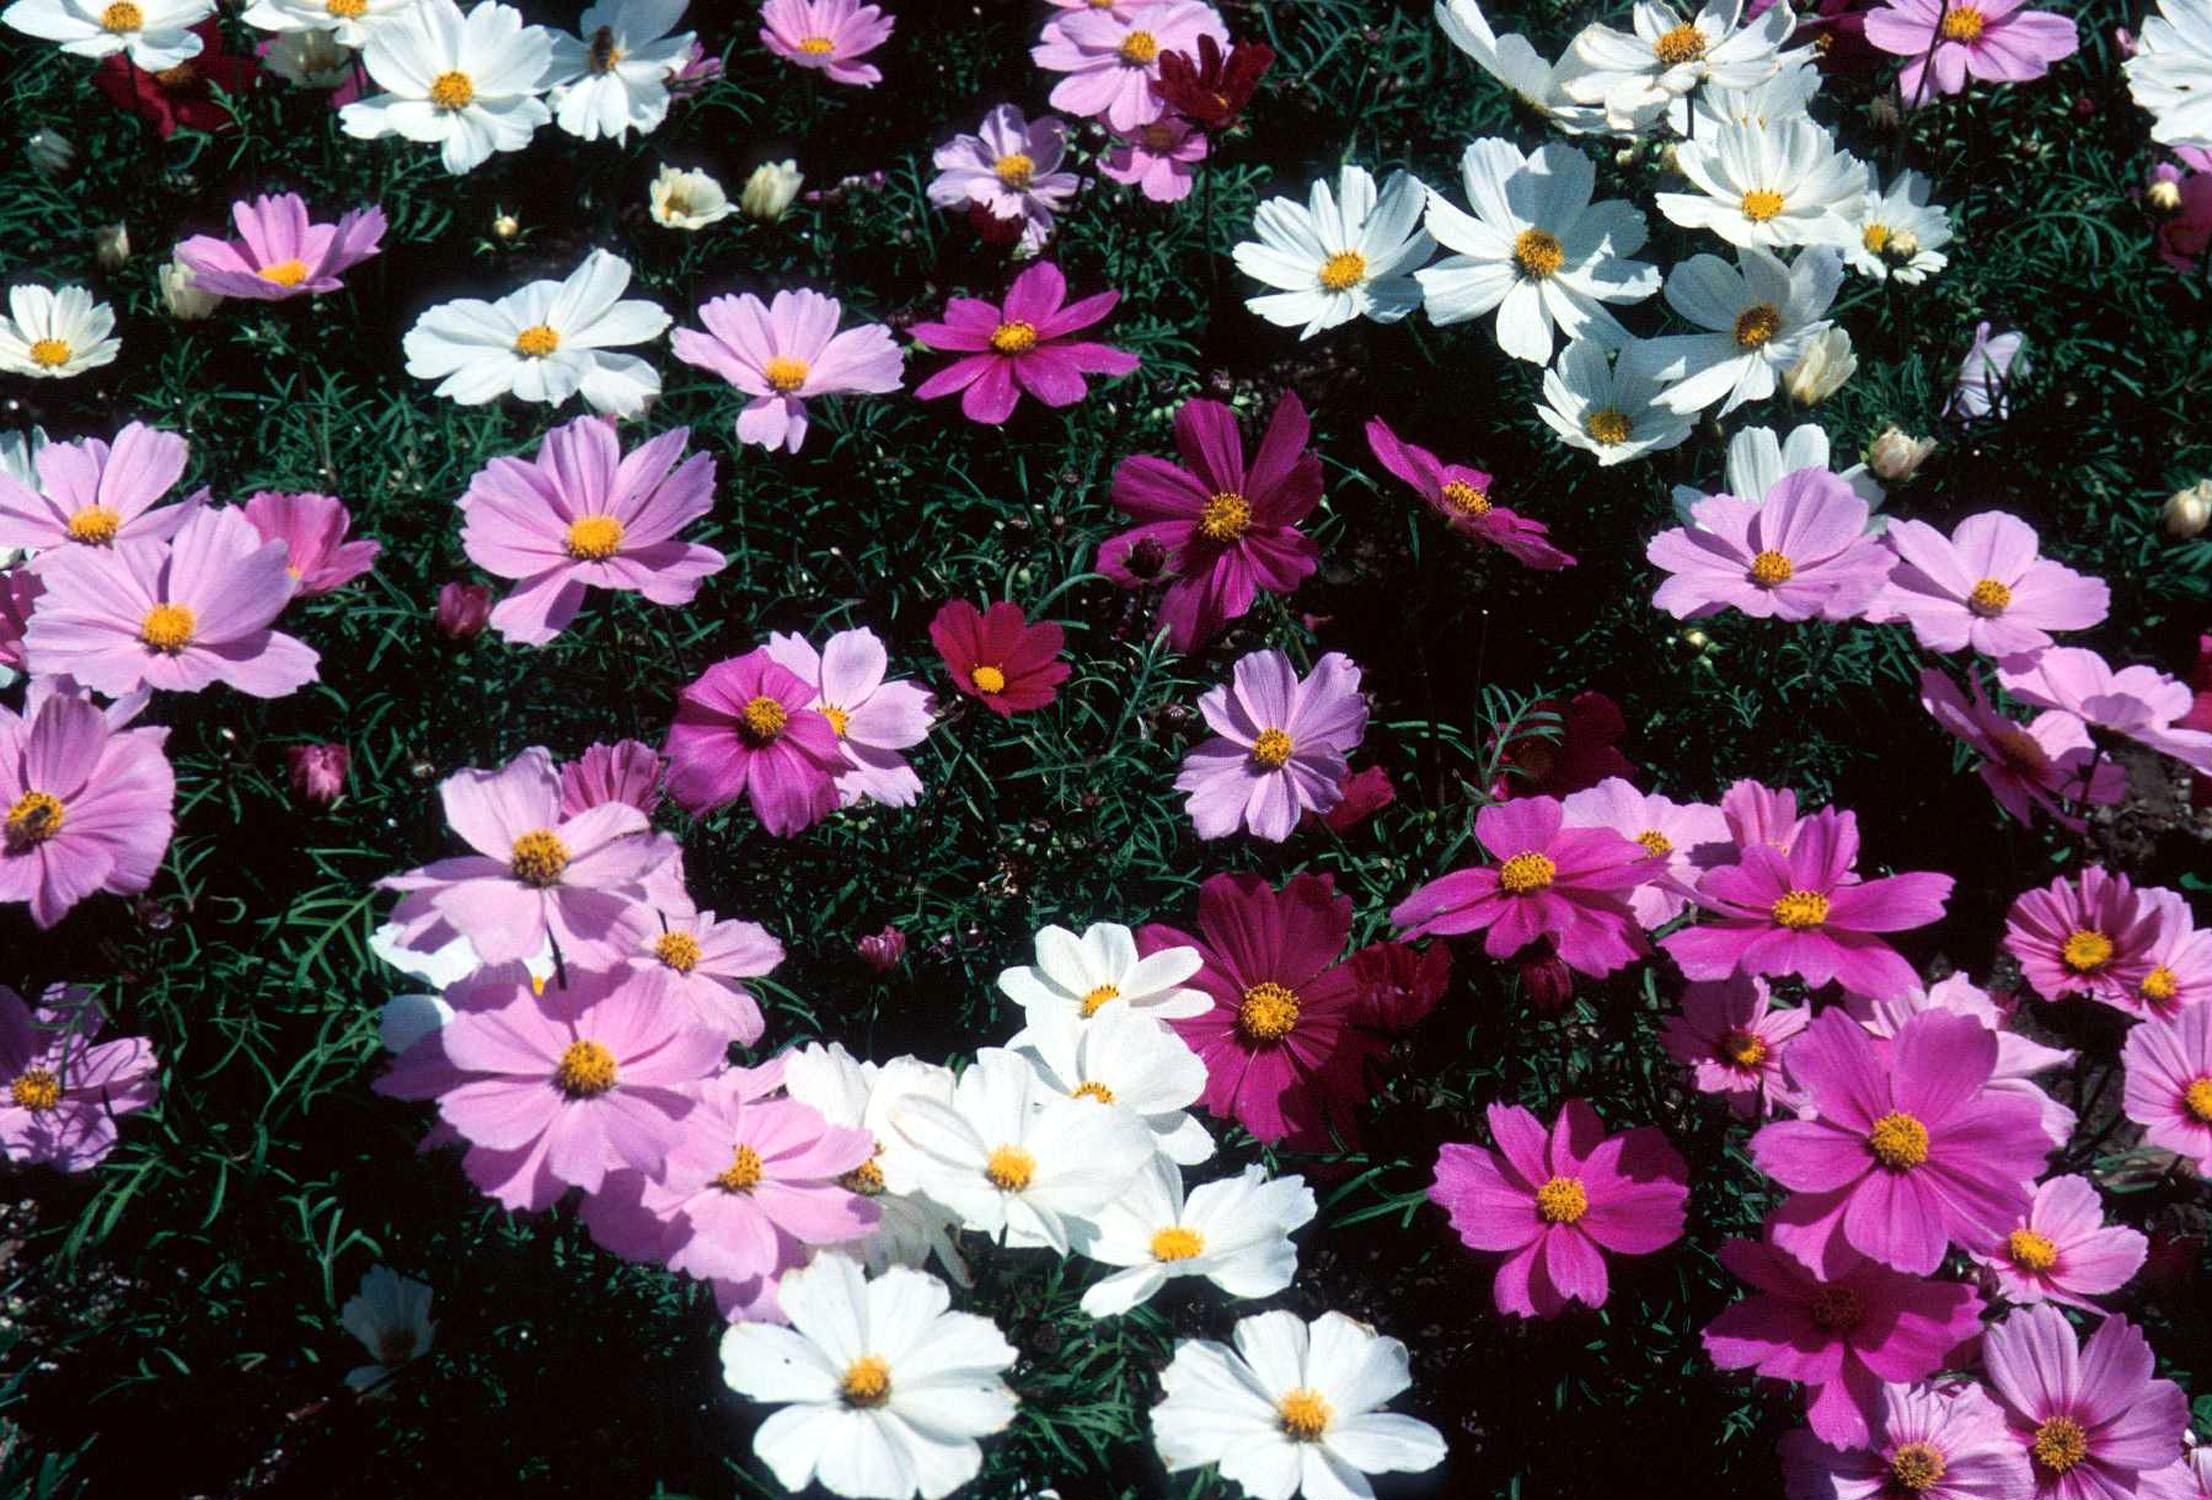 The beautiful, daisy-like flowers and airy fern-like foliage of the cosmos make it an ideal plant for the cottage garden. They are easy to grow from transplants or seeds. Plant now for late summer and fall color.